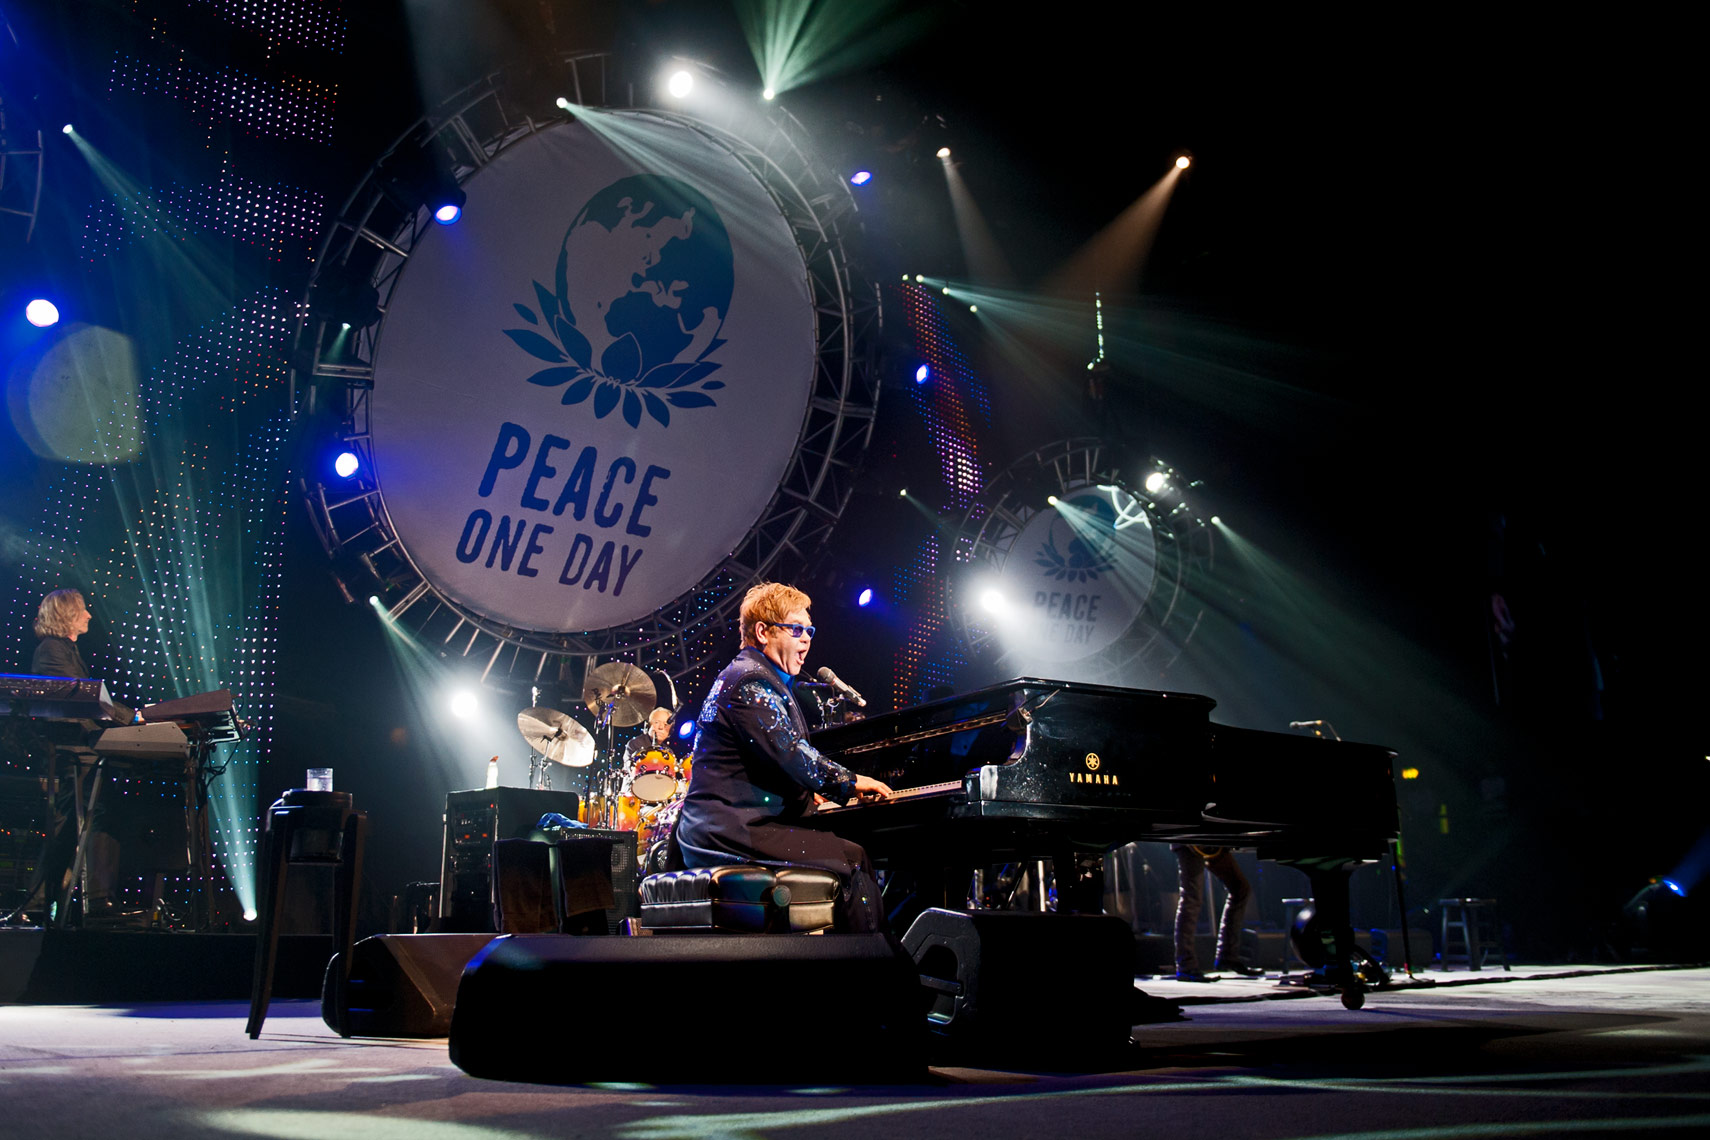 Elton-John-Peace-One-Day-Wembley-Arena.jpg